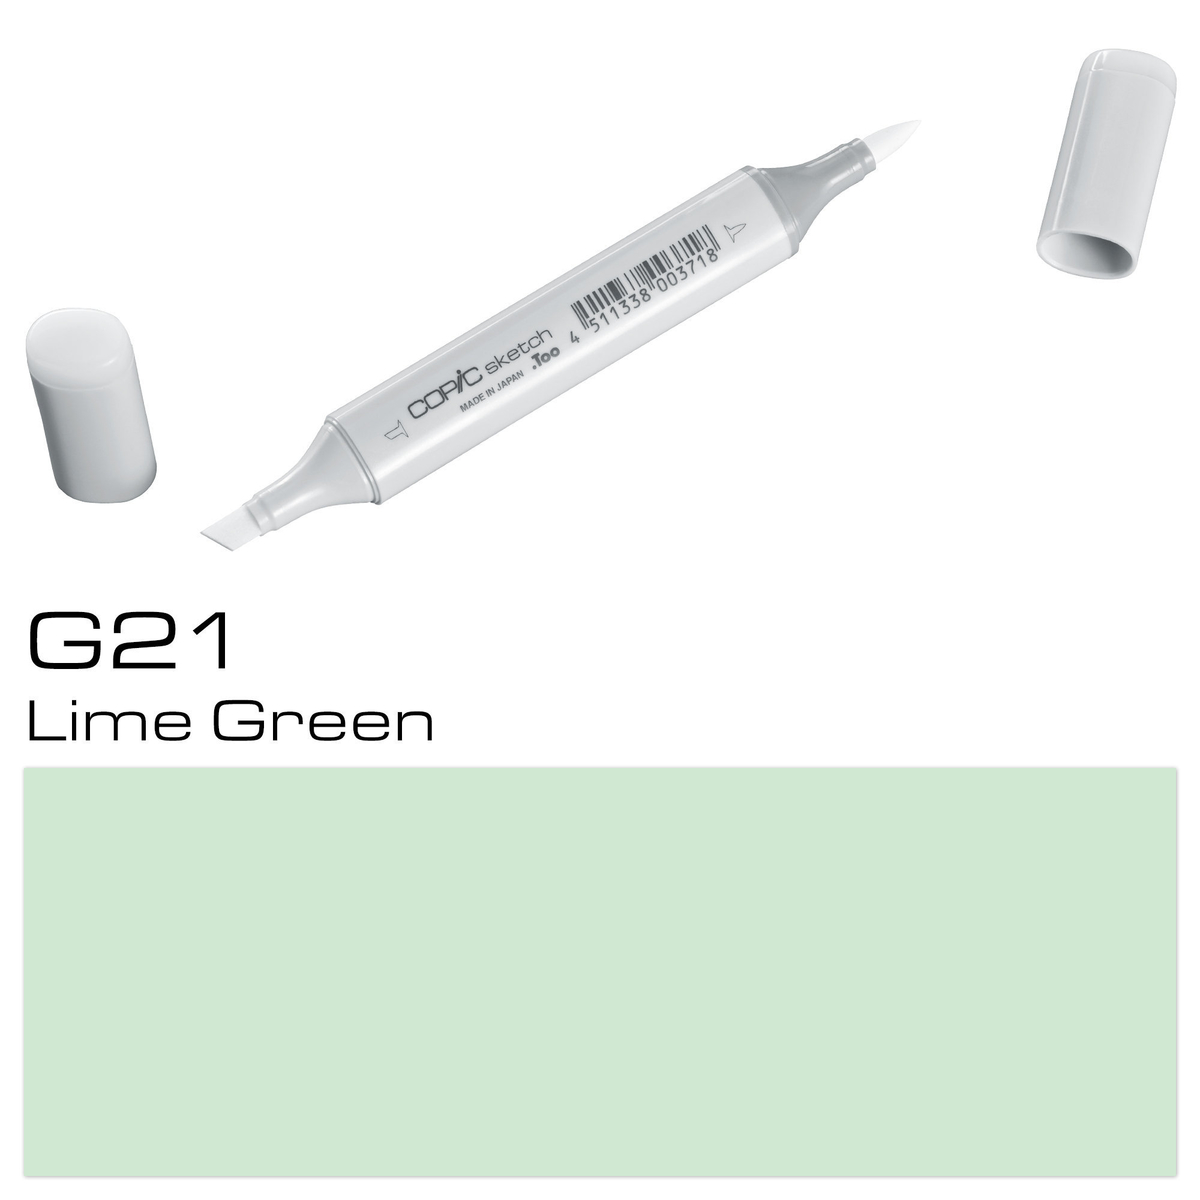 Copic Sketch G 21 lime green